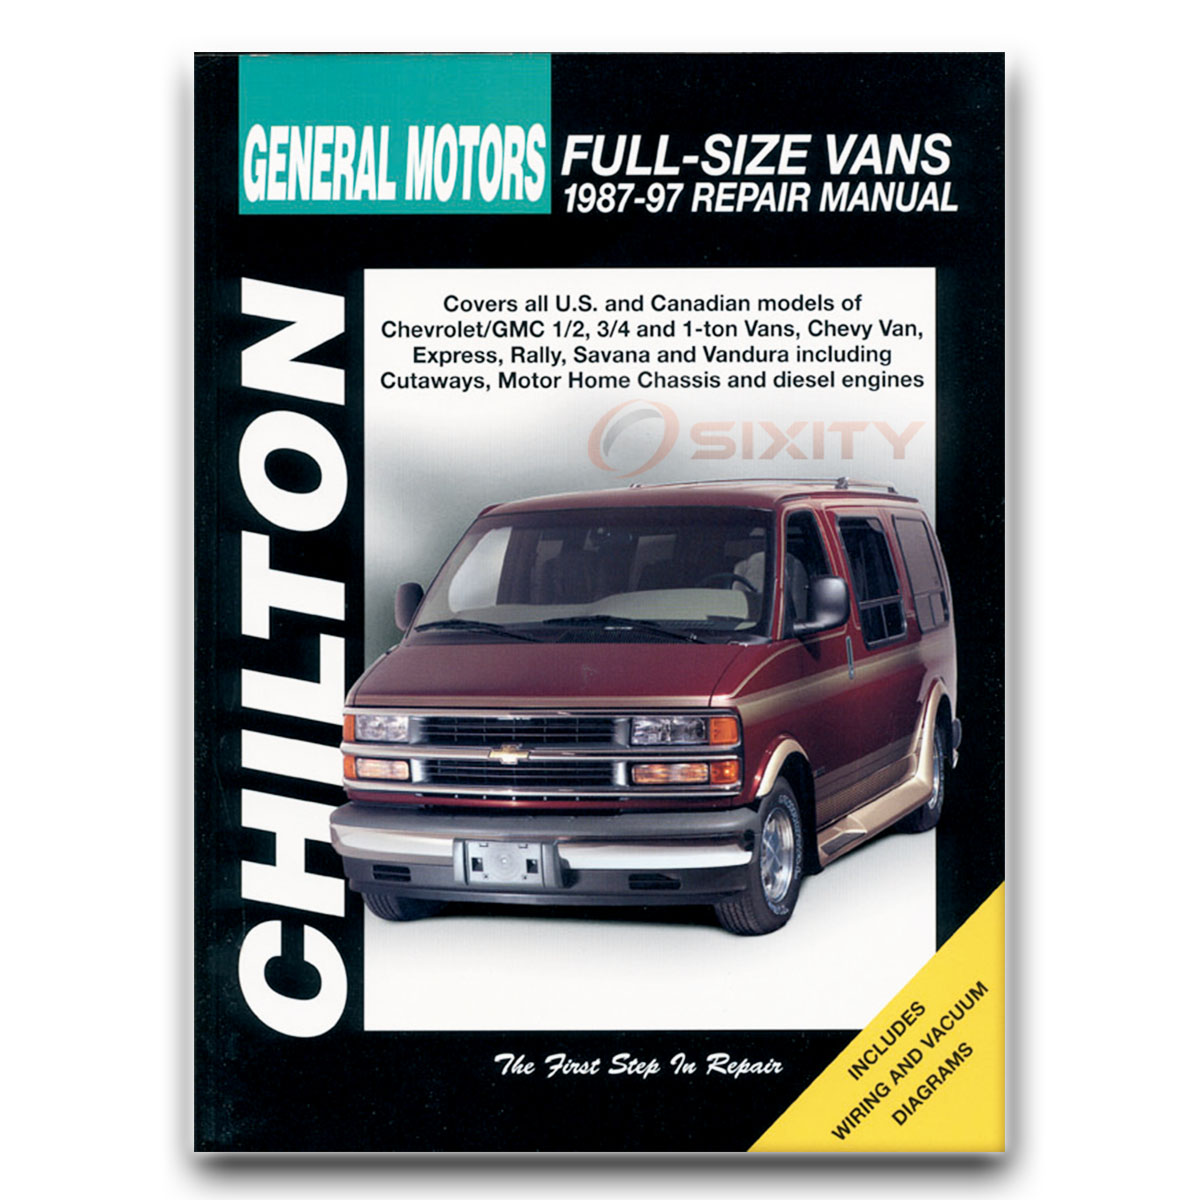 Chevy Express 1500 Chilton Repair Manual LS Base Shop Service Garage Book fz